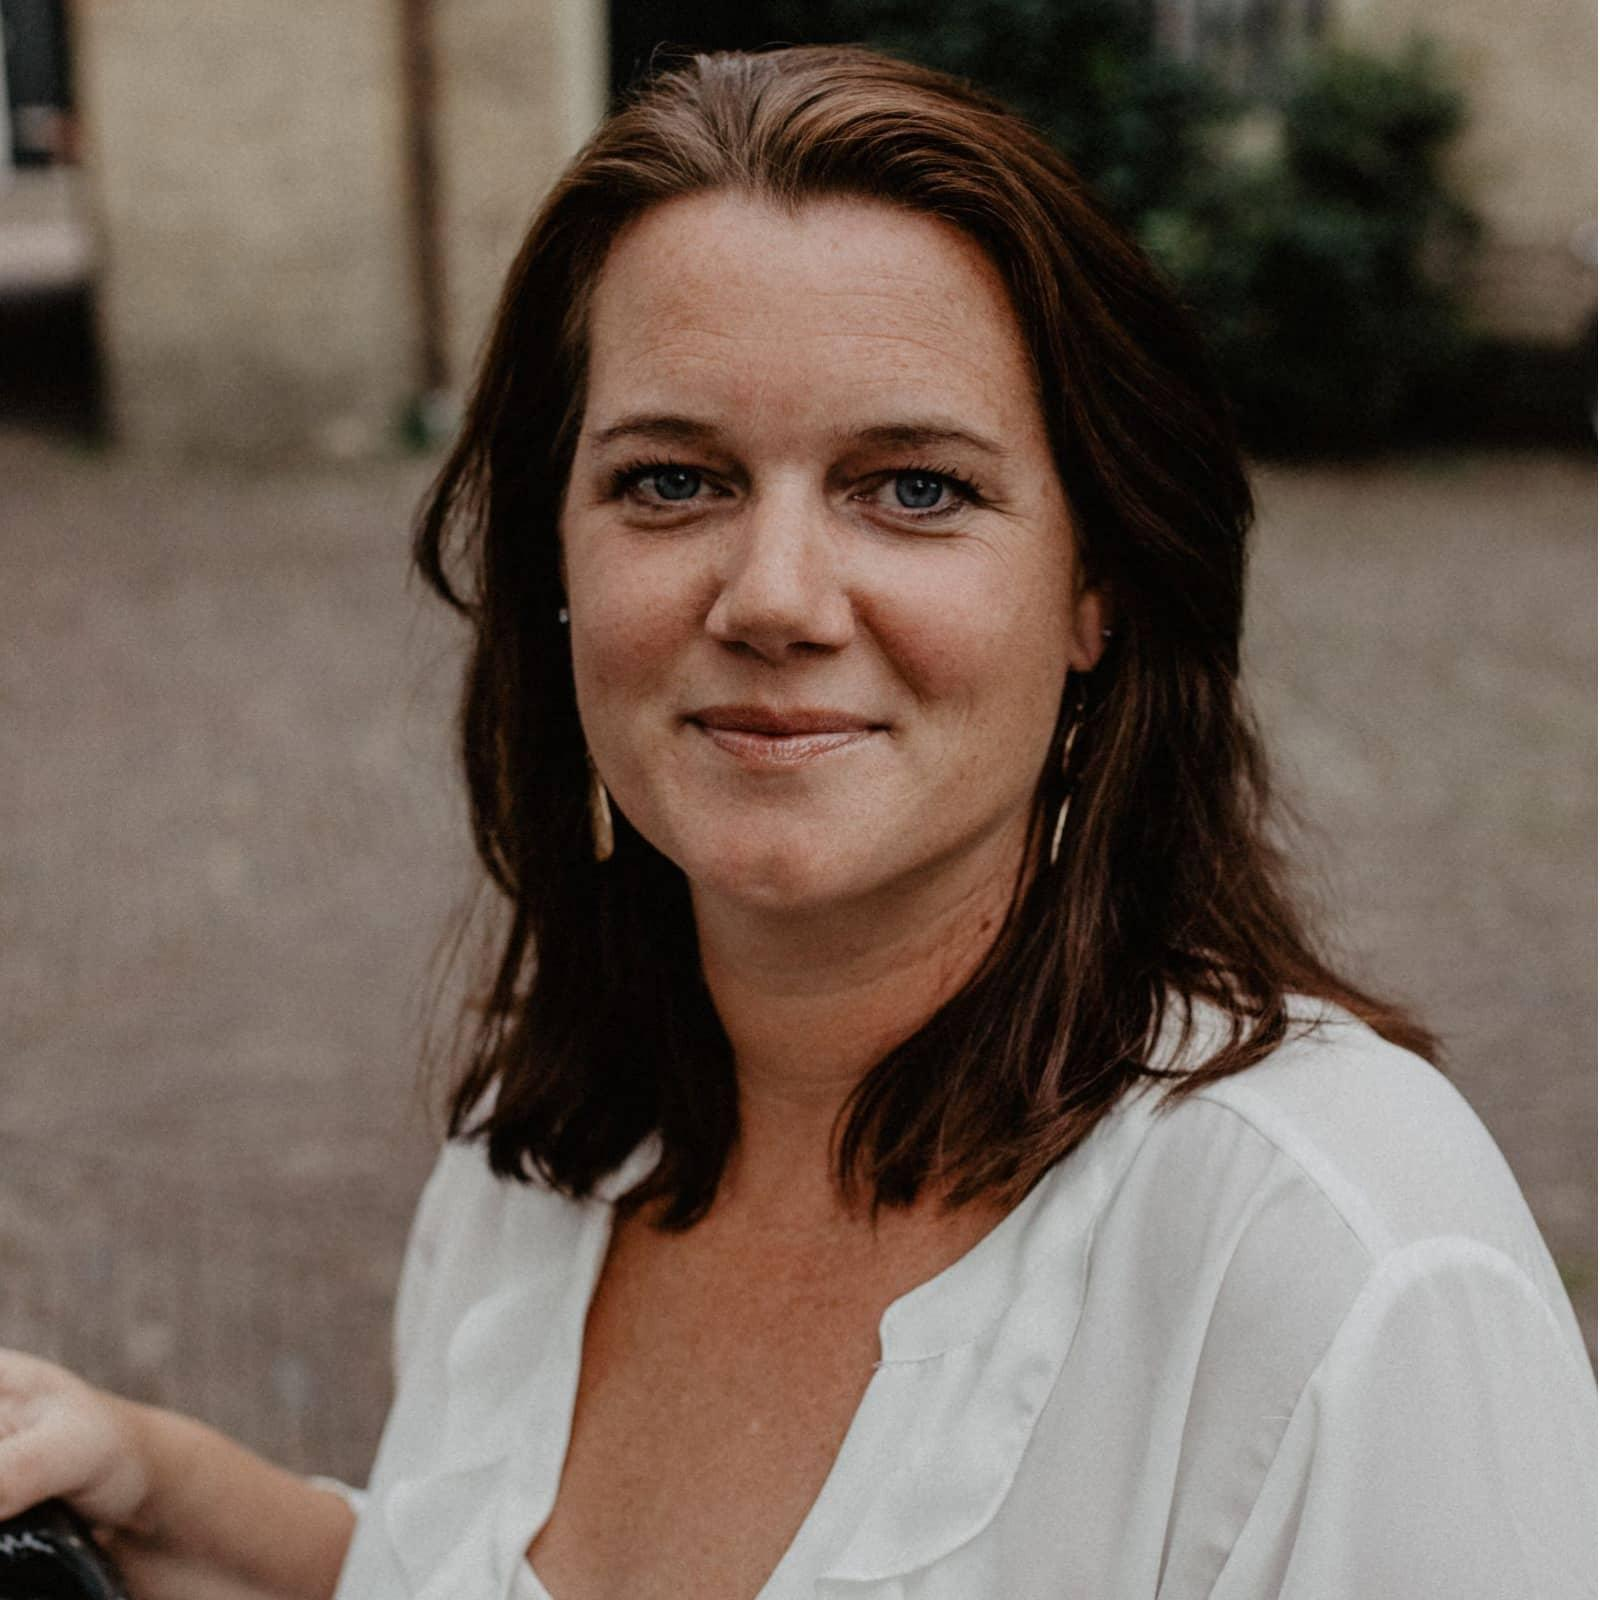 Annemarie Jonker - Virtual Assistant in Opperdoes